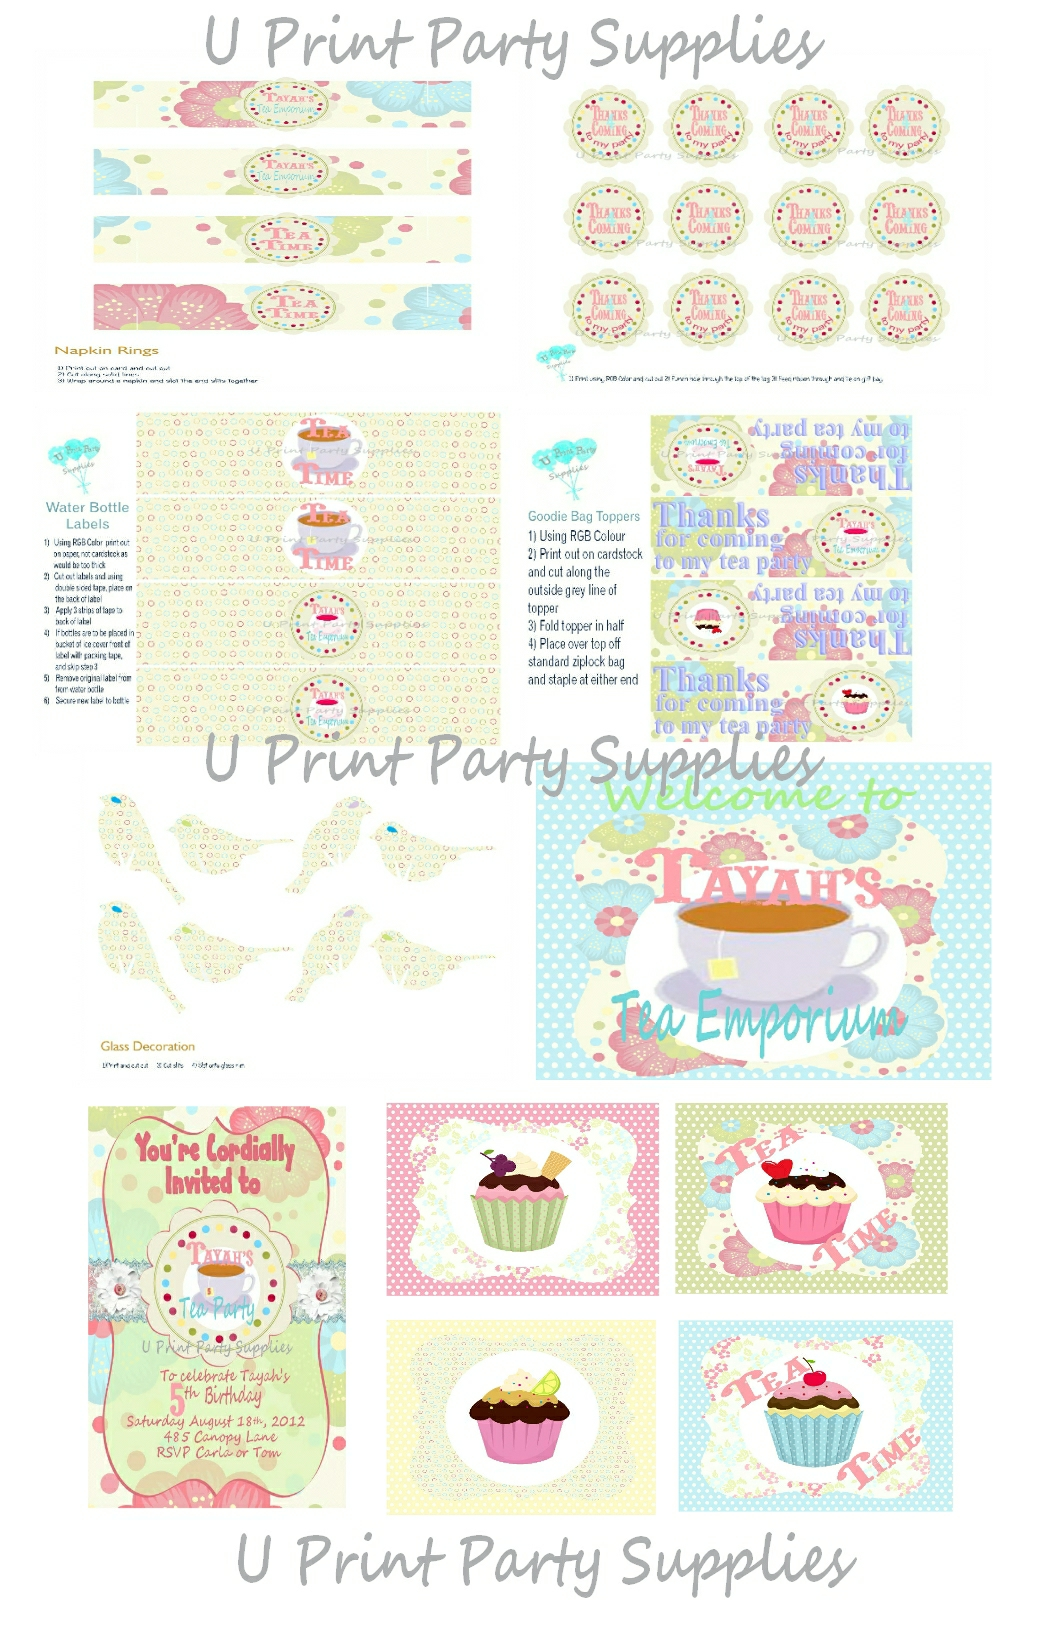 Tea Party 101…tea party ideas from start to finish… | U Print ...